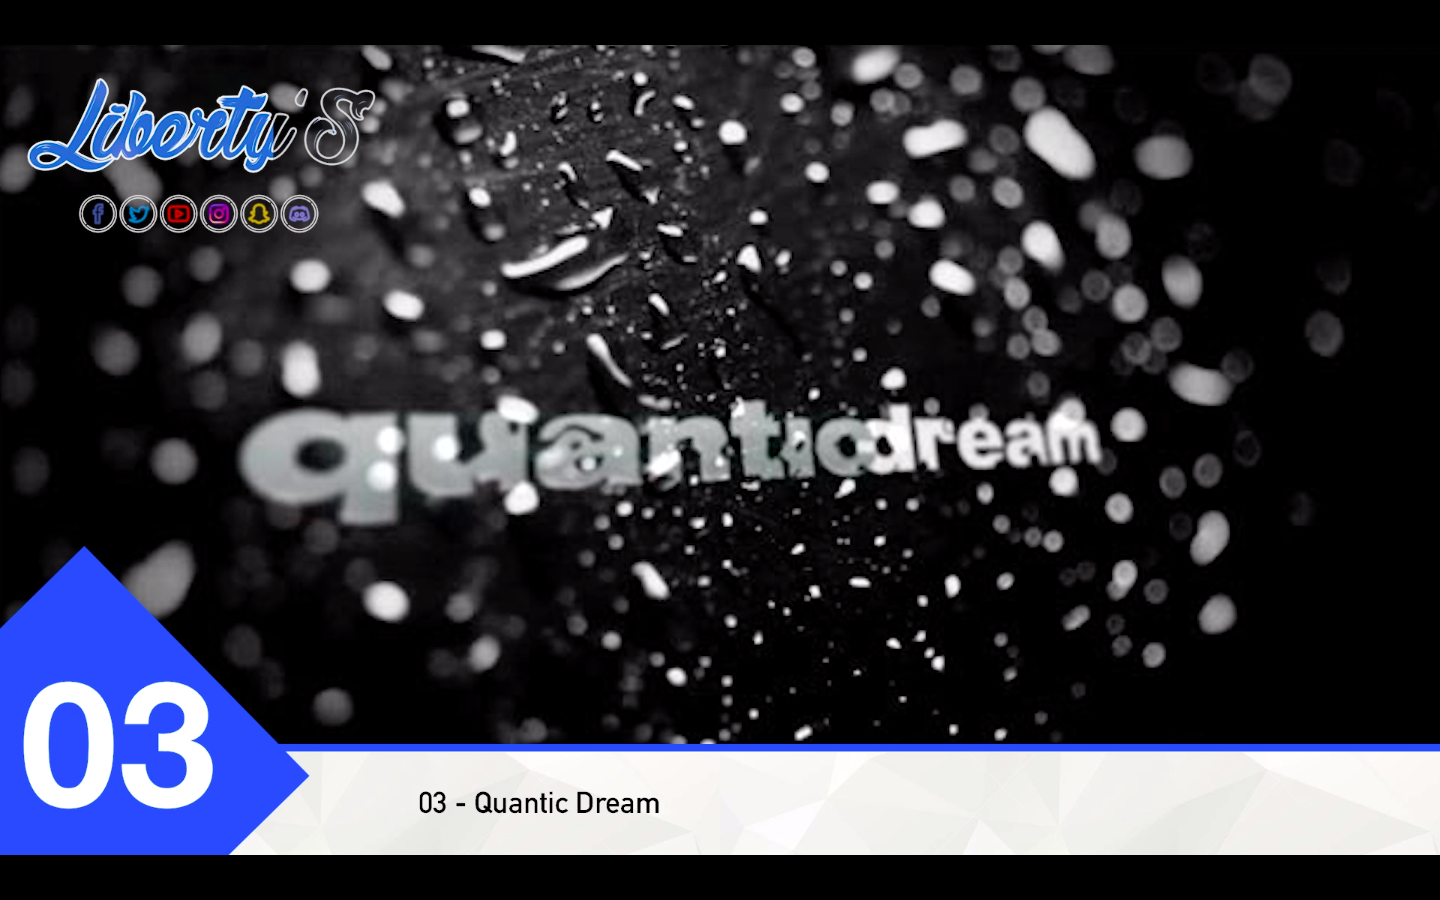 Top 03 - Quantic Dream